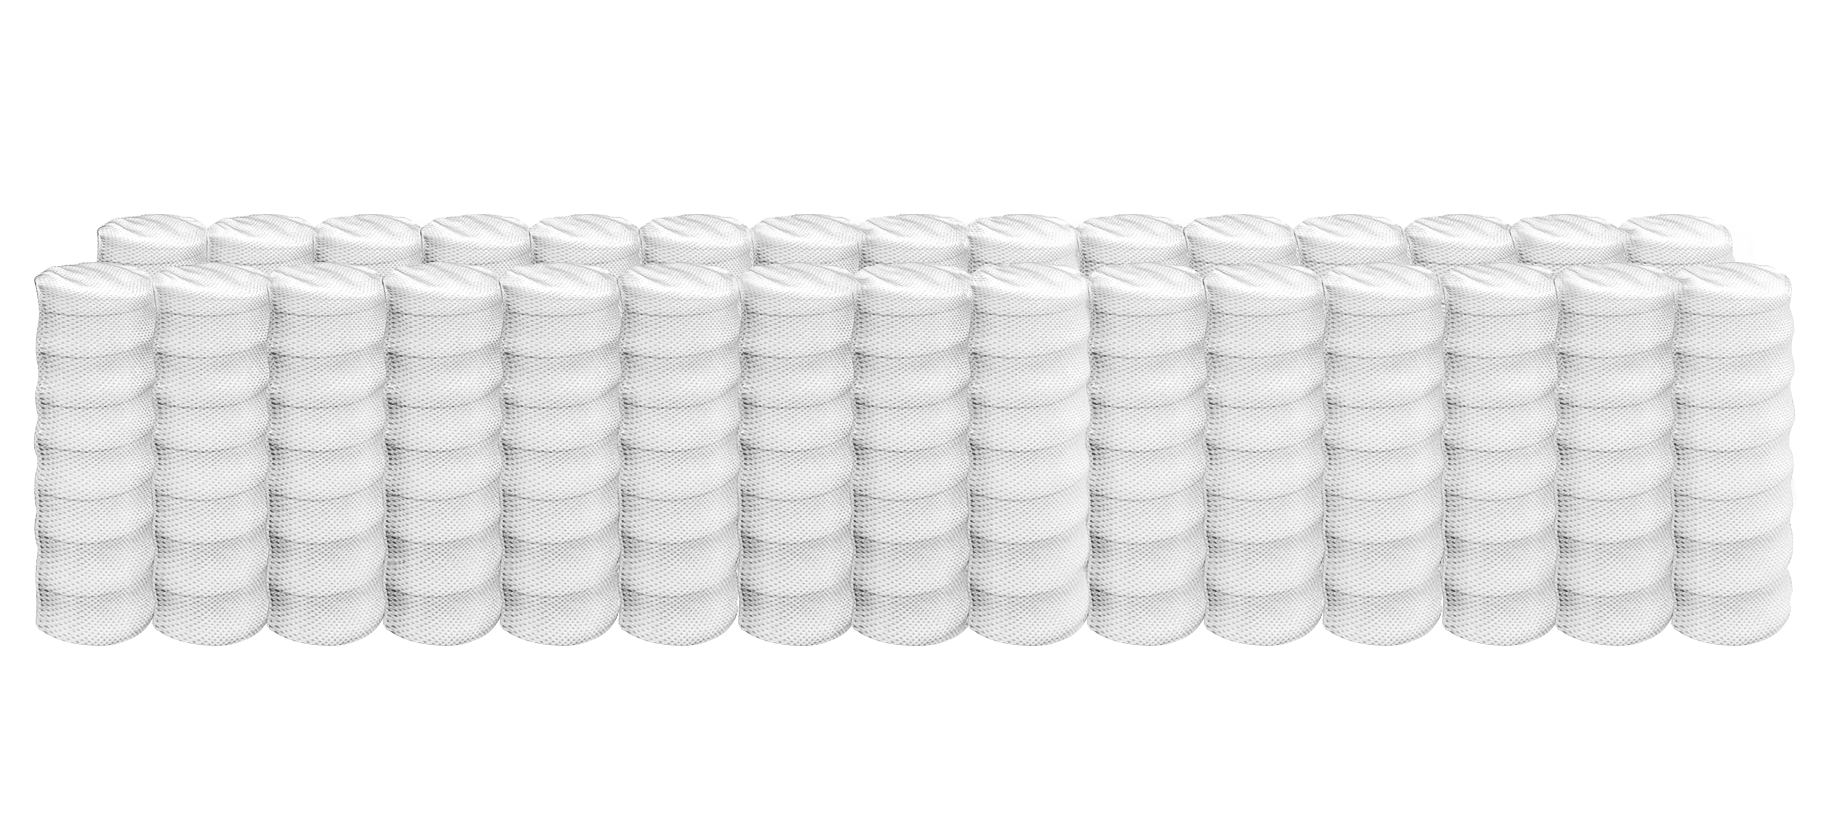 Individual support wrapped coil system